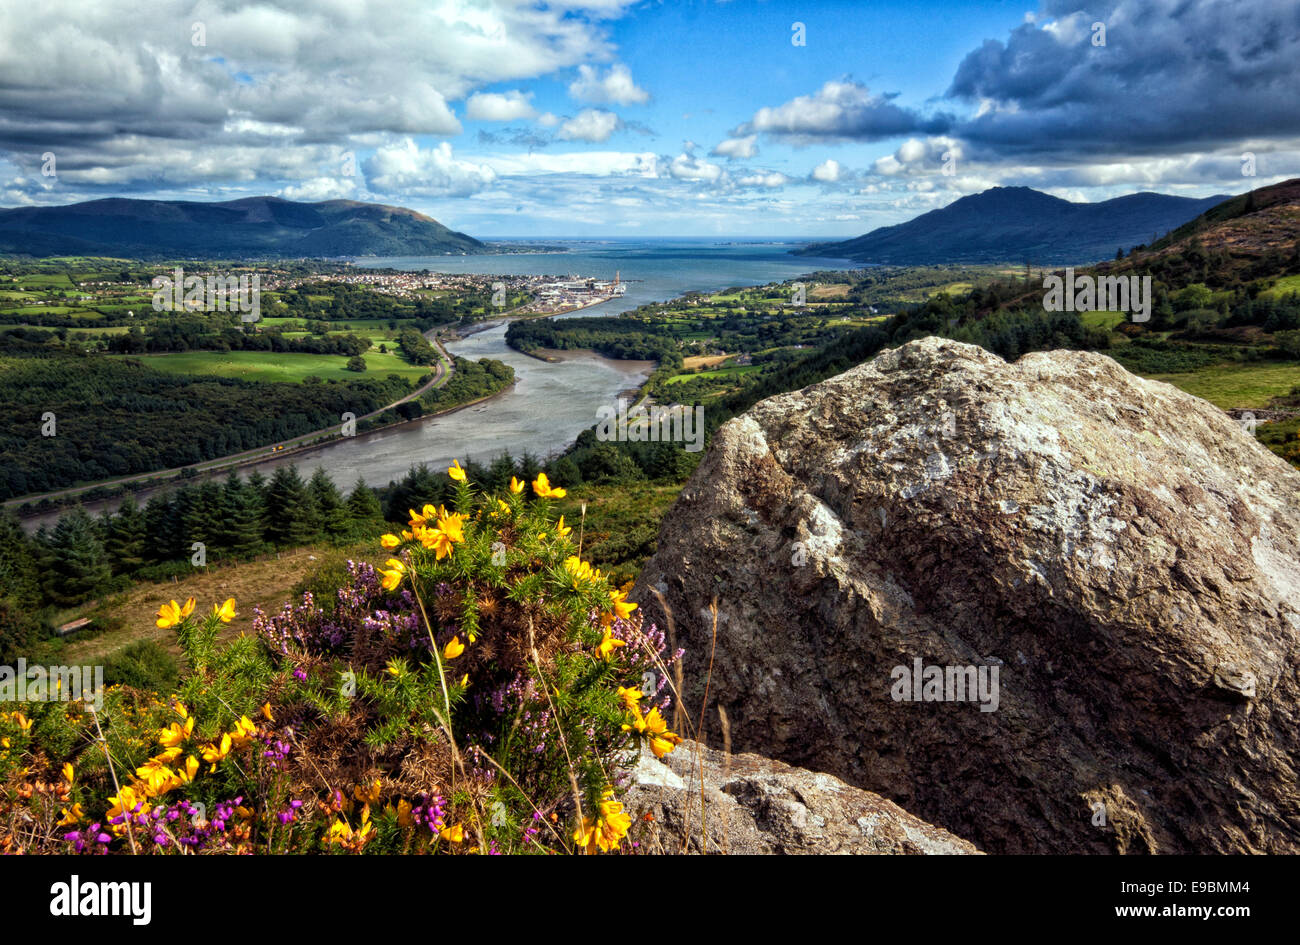 View from Flagstaff Viewpoint in Newry looking over Carlingford Lough towards Omeath and Warrenpoint. - Stock Image